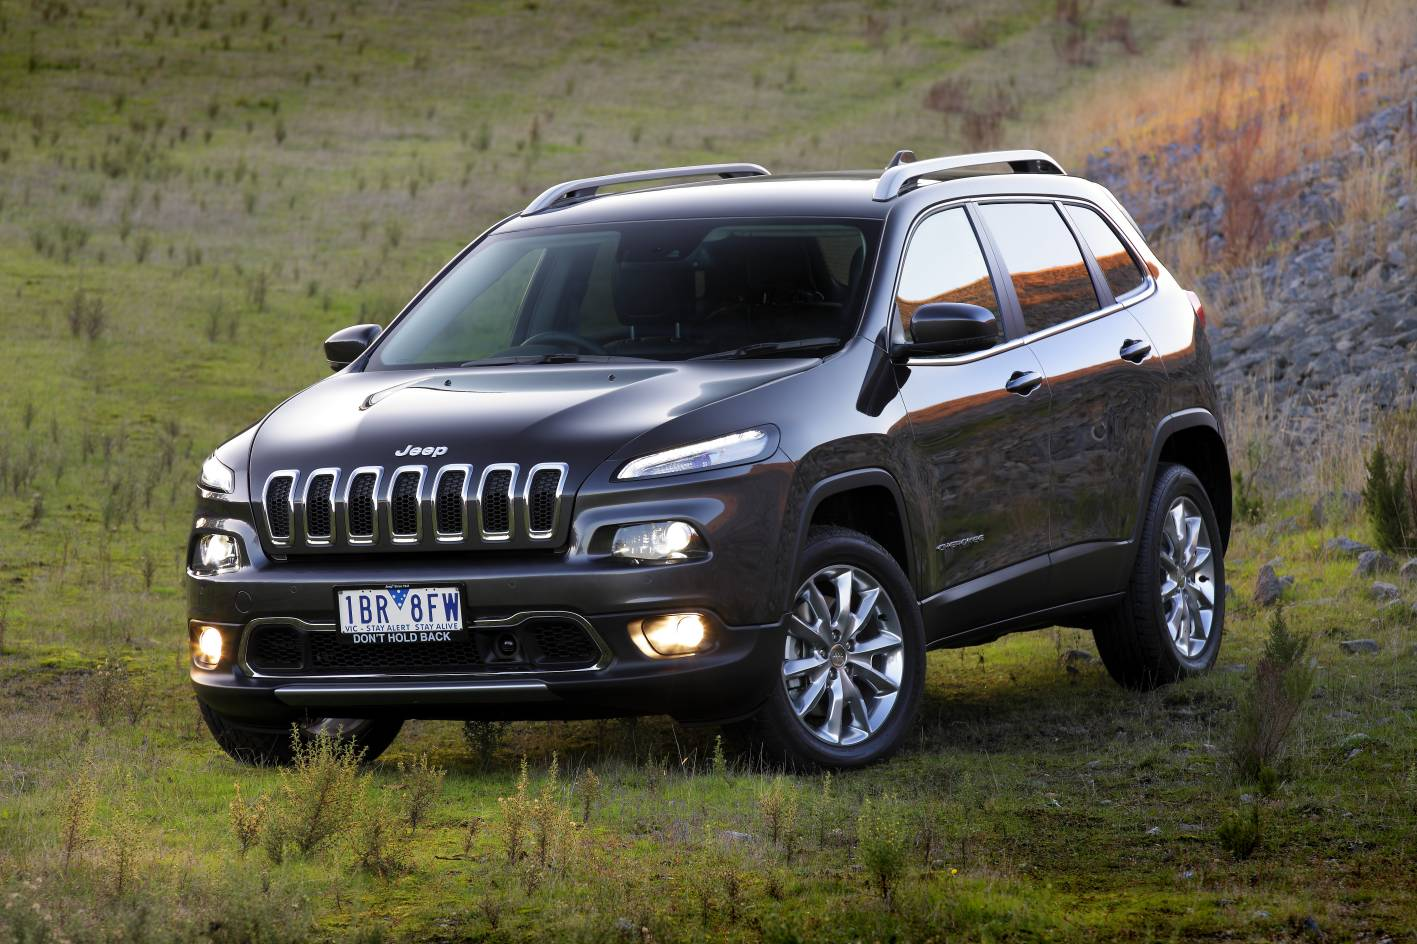 2014 jeep cherokee limited. Cars Review. Best American Auto & Cars Review